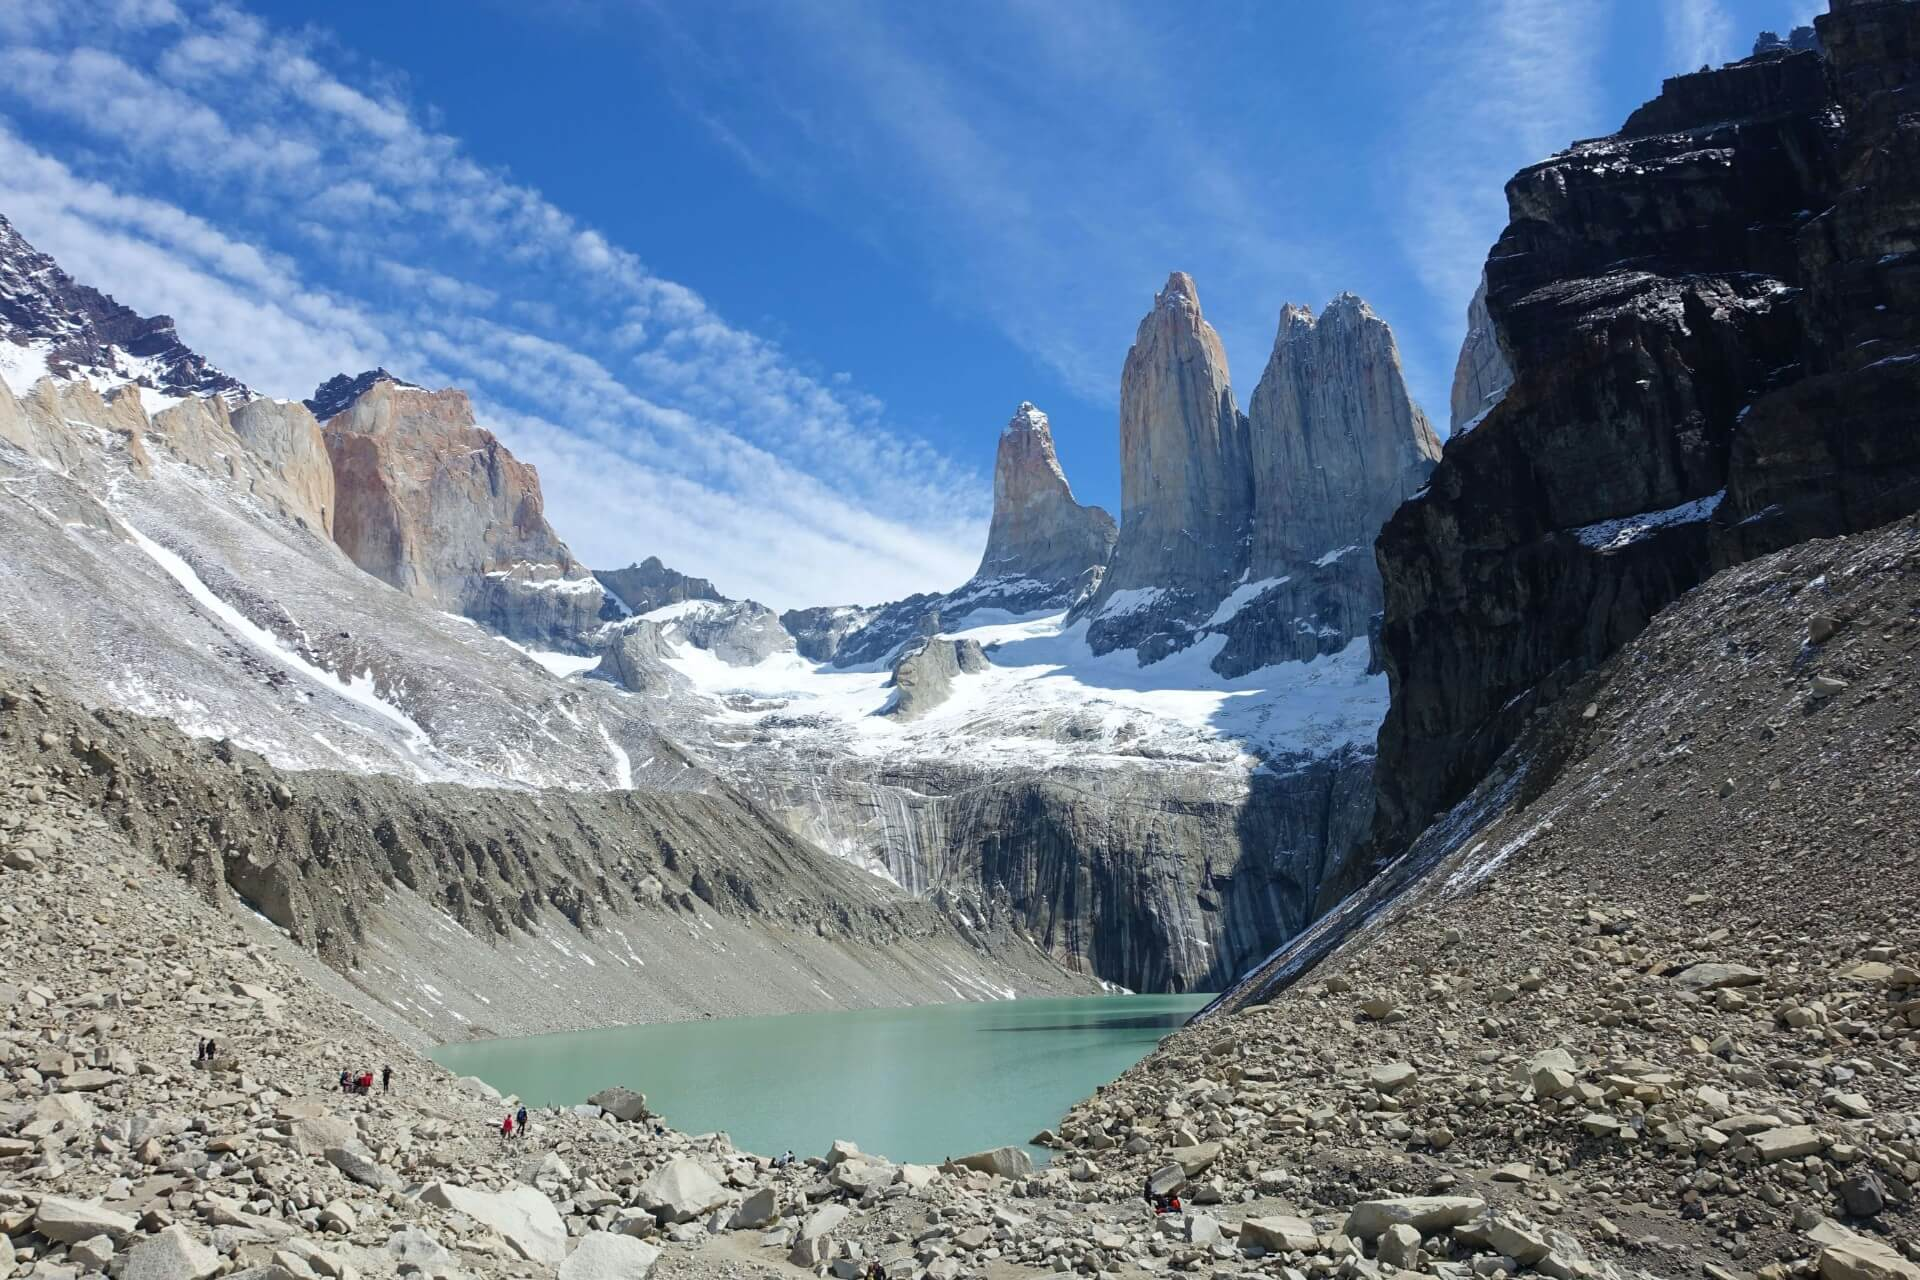 Parque Nacional Torres del Paine – Créditos: Photo by Joanna Liu on Unsplash.